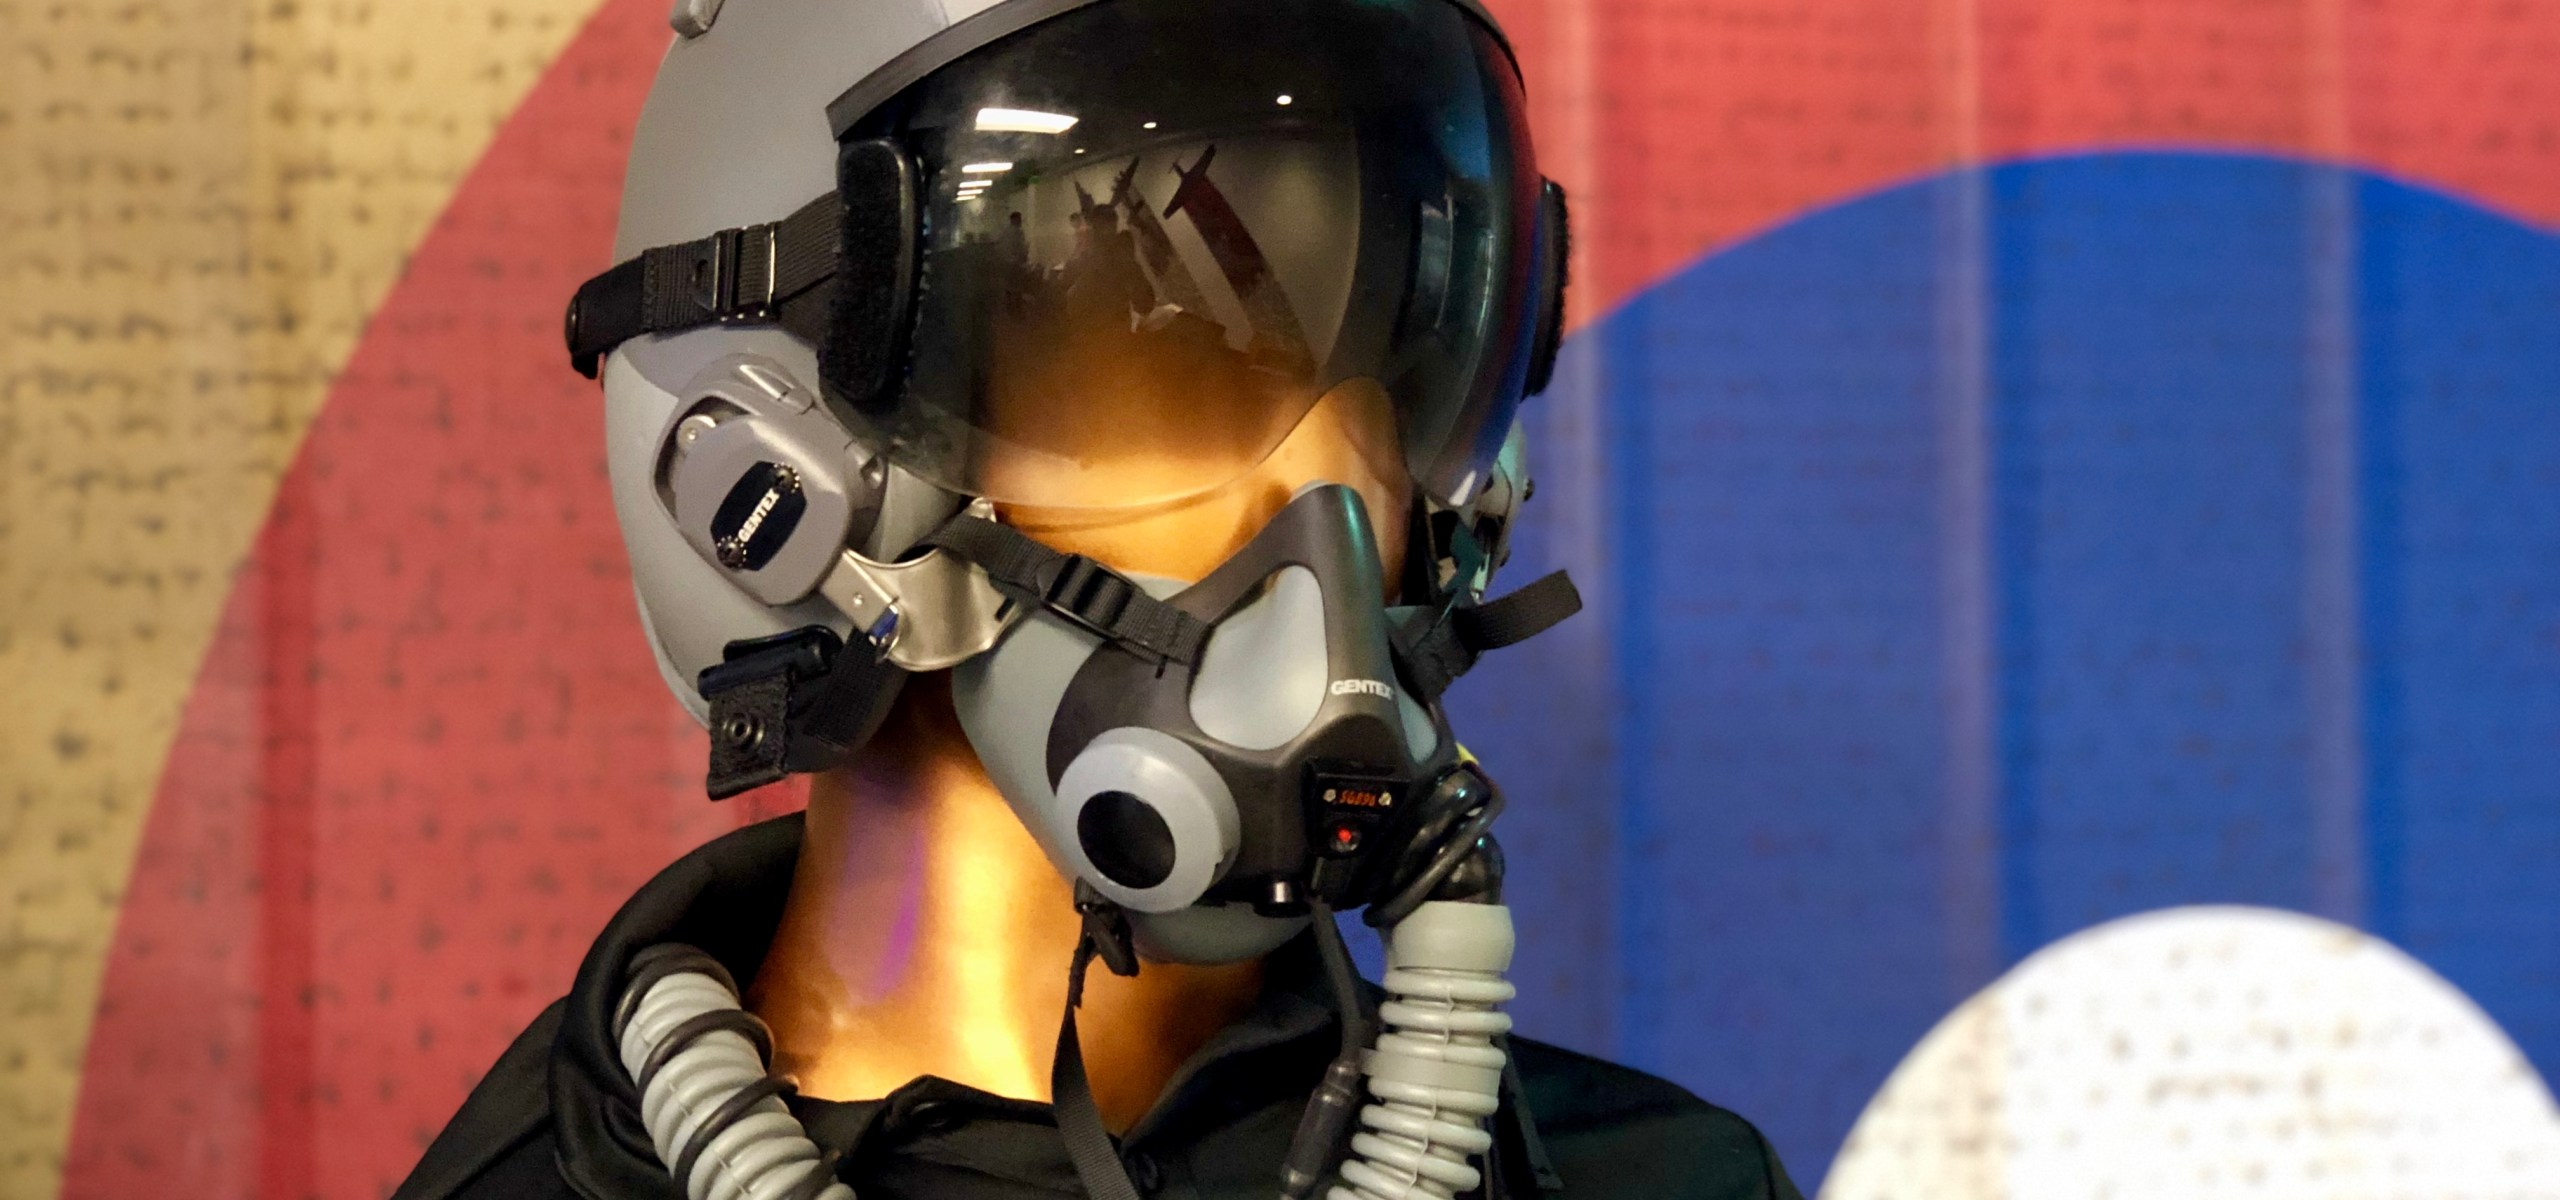 USAF Fixed Wing Helmet at AFWERX Vegas photo by Frank Gruber